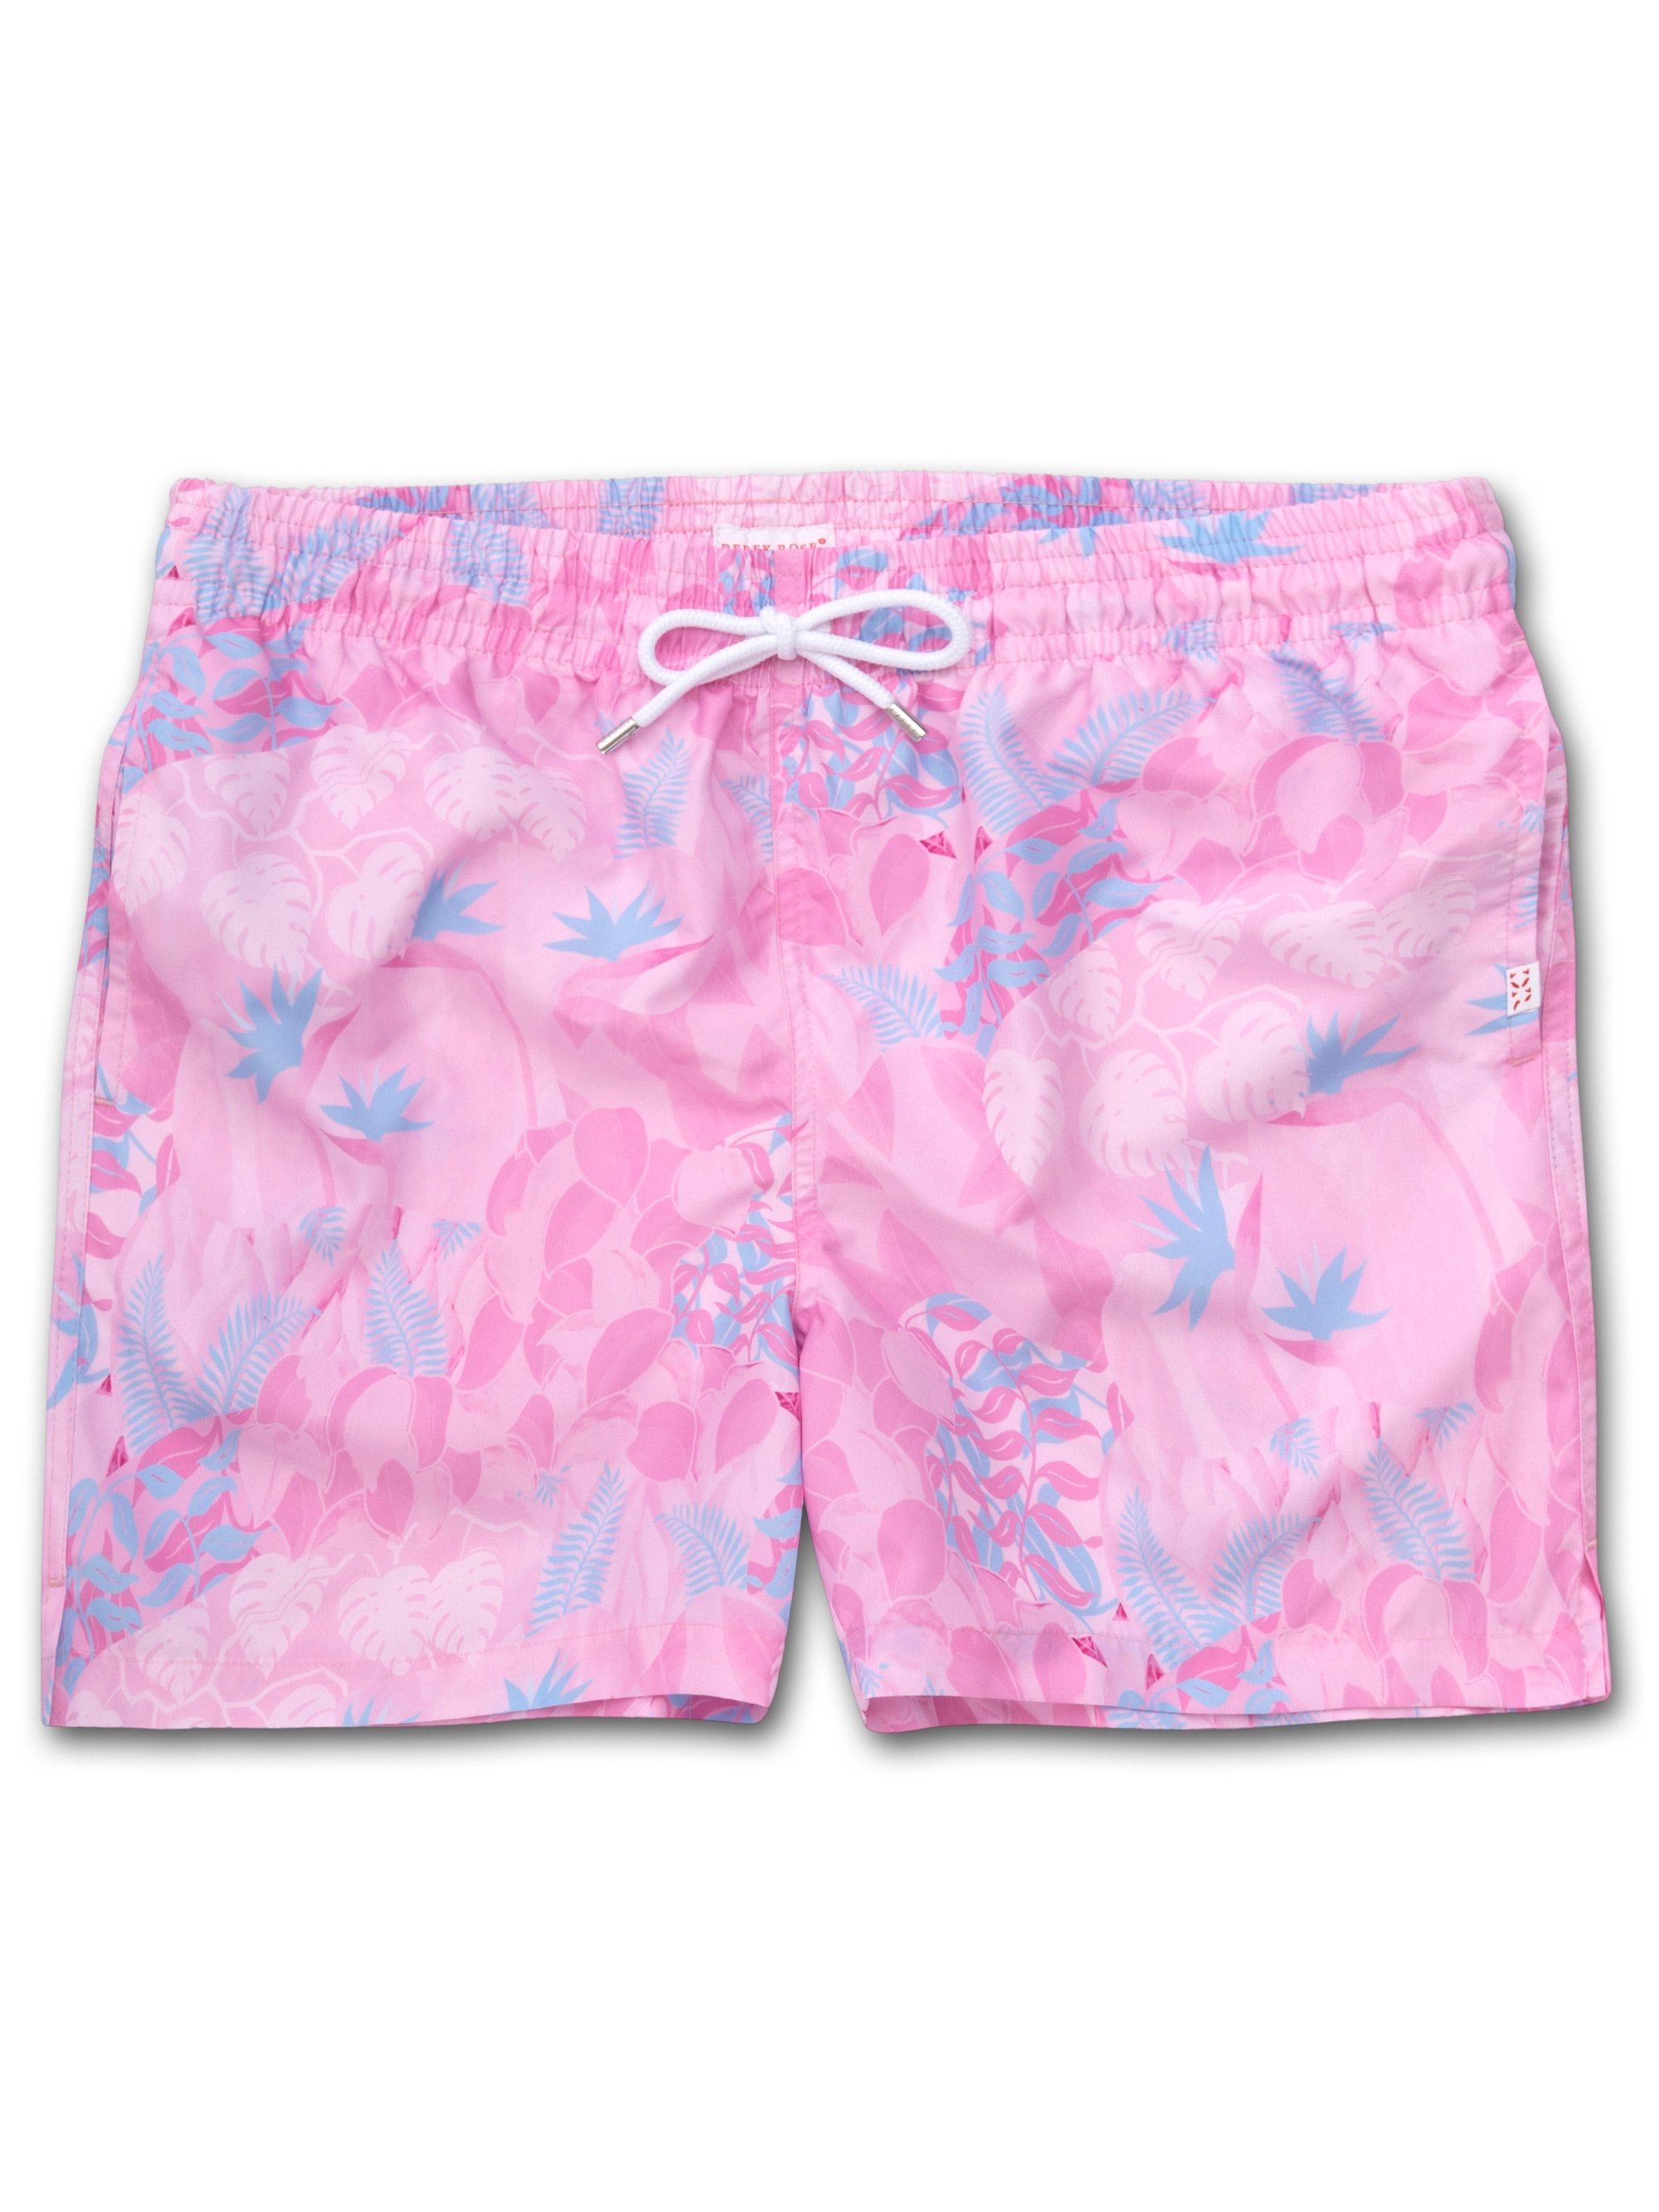 Men's Short Classic Fit Swim Shorts Maui 31 Pink